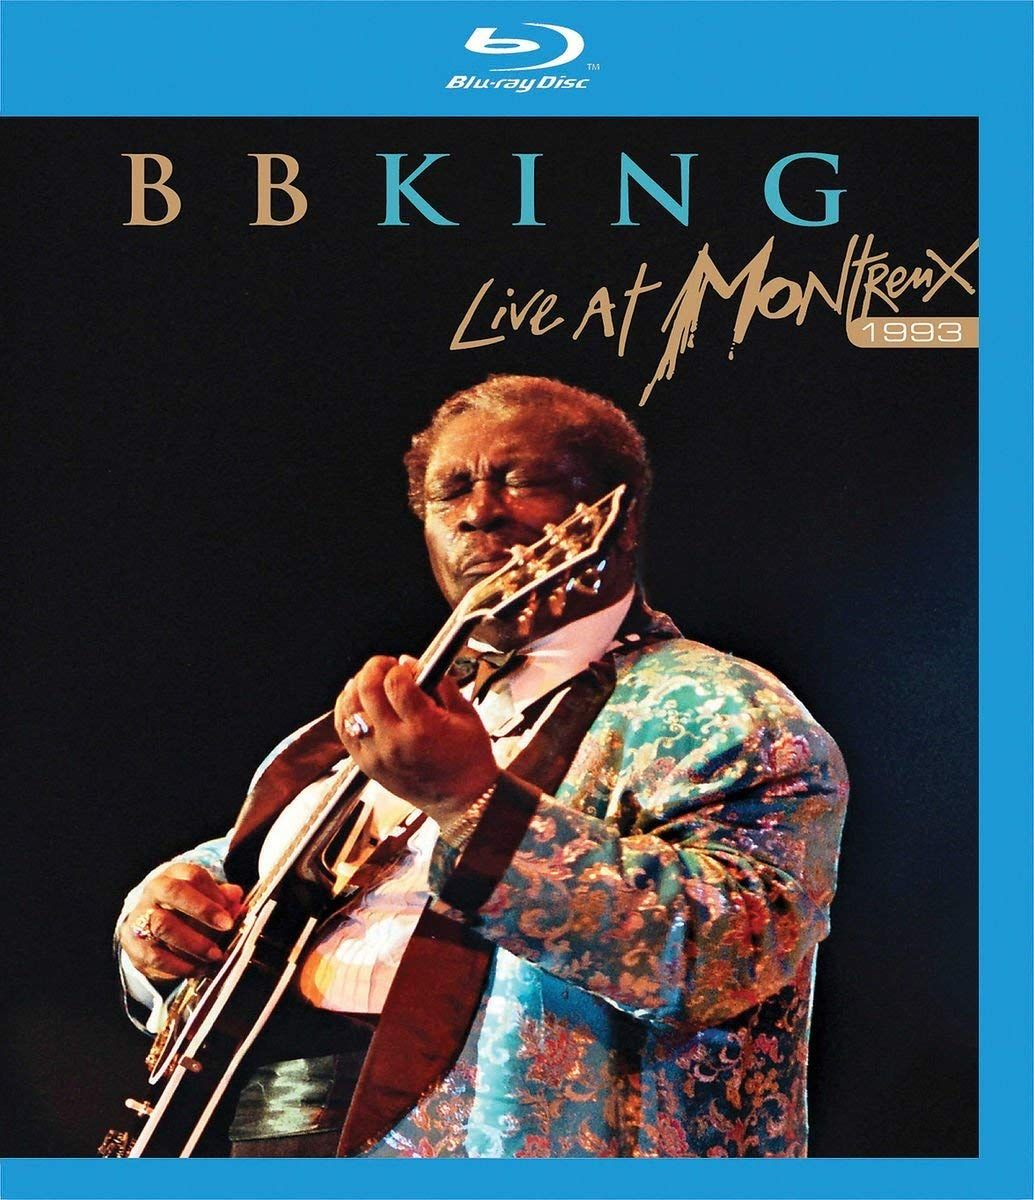 B.B King With Tuff Green Orch - Live At Montreux 1993 (Blu-Ray) - 1